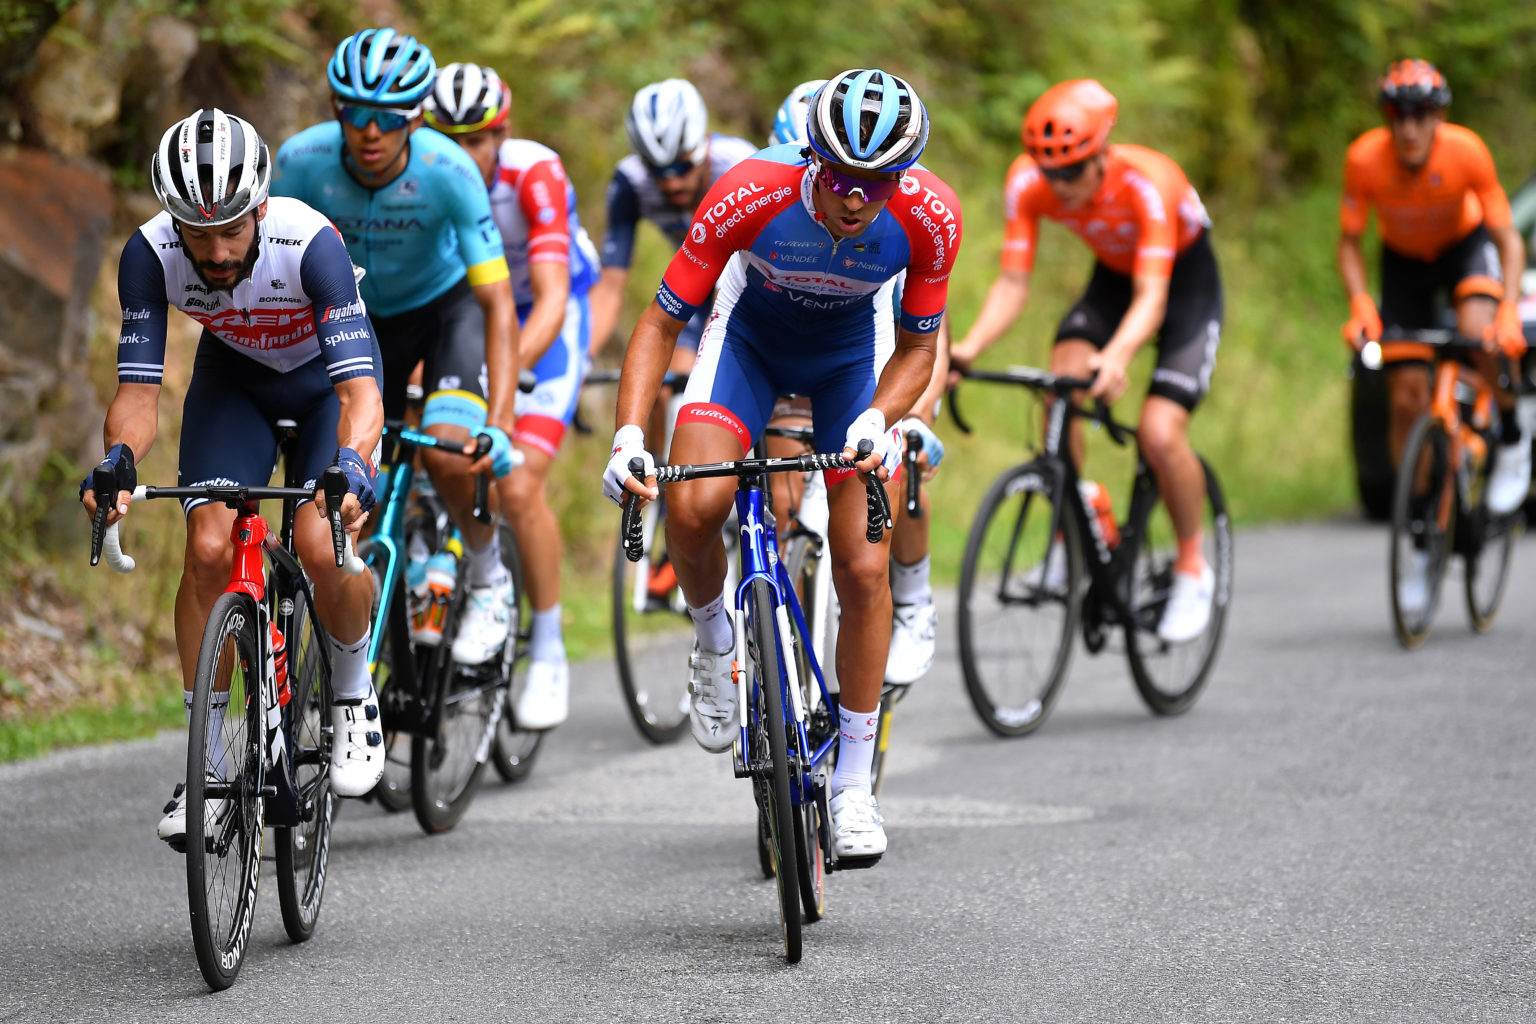 SARRANCOLIN, FRANCE - AUGUST 03: Julien Bernard of France and Team Trek - Segafredo / Lilian Calmejane of France and Team Total Direct Energie / Harold Tejada Canacue of Colombia and Astana Pro Team / Benoit Cosnefroy of France and Team Ag2R La Mondiale / Matthieu Ladagnous of France and Team Groupama - FDJ / Joan Bou of Spain and Team Fundacion - Orbea / Julien Trarieux of France and Team Nippo Delko Provence / Georg Zimmermann of Germany and CCC Team / during the 44th La Route d'Occitanie - La Depeche du Midi 2020, Stage 3 a 163,5km stage from  Saint Gaudens to Col de Beyrède 1417m / @RouteOccitanie / #RDO2020 / on August 03, 2020 in Sarrancolin, France. (Photo by Justin Setterfield/Getty Images)